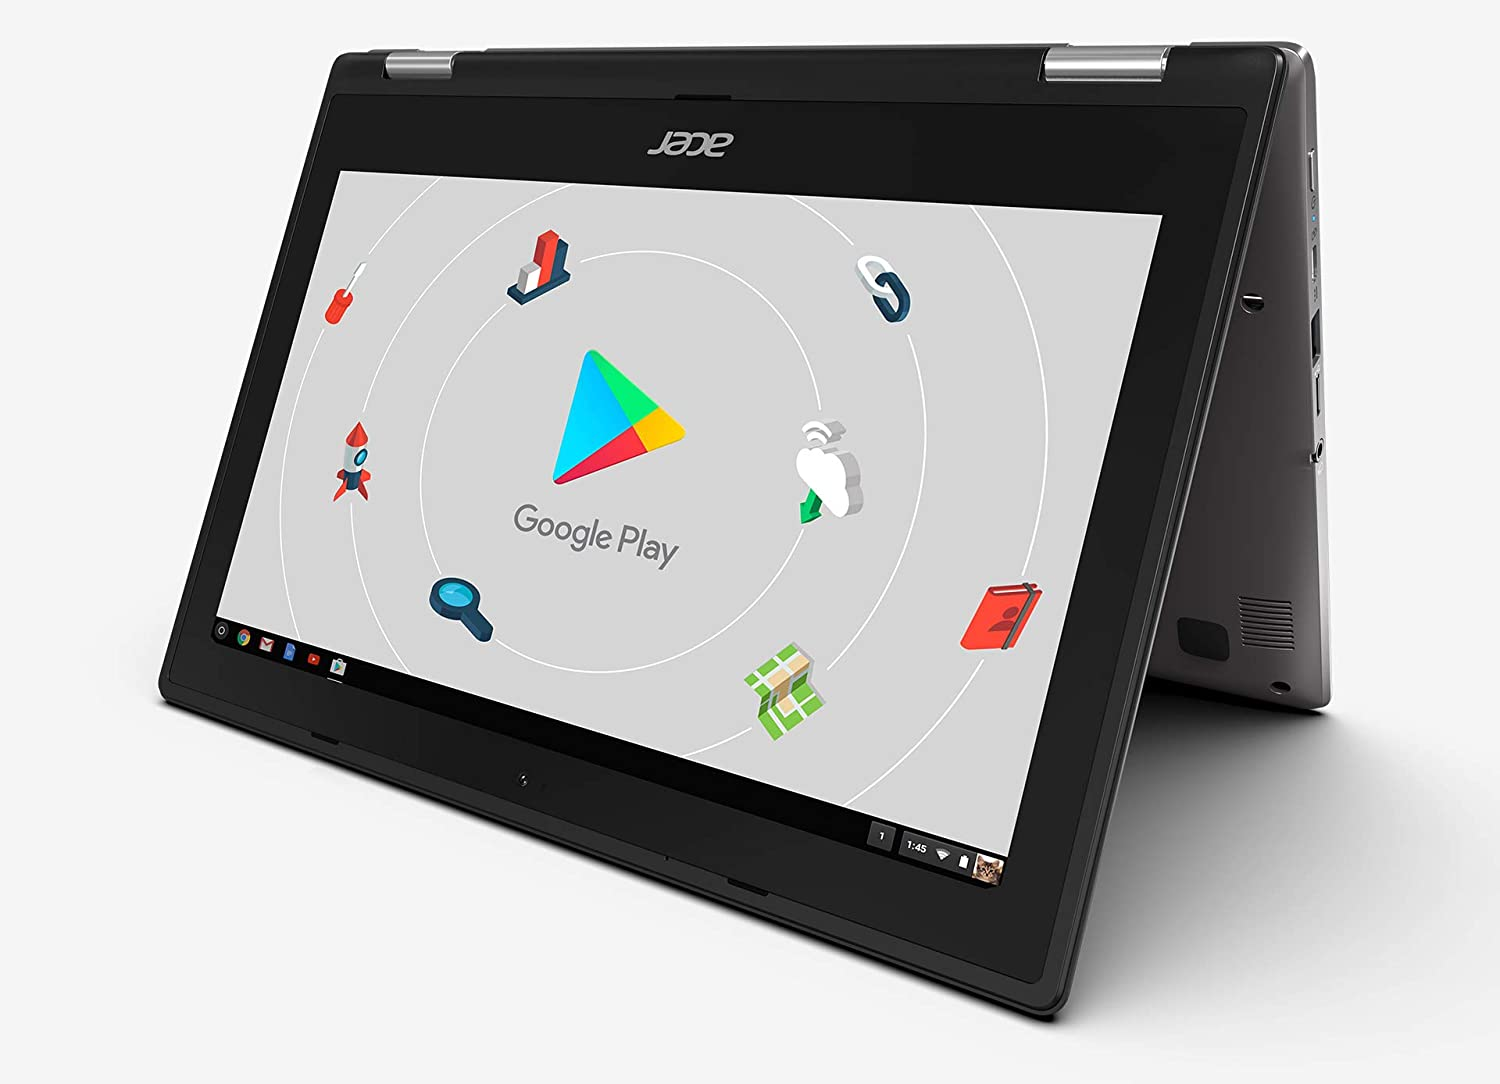 Newest Acer 2-in-1 Ultra Slim Chromebook, 11.6inch IPS Multi-Touch Screen, Intel Celeron Processor Up to 2.4 GHz, 4GB LPDDR4 Memory, 32GB eMMC, WiFi, Bluetooth, Chrome OS (Chrome OS, Silver)(Renewed)